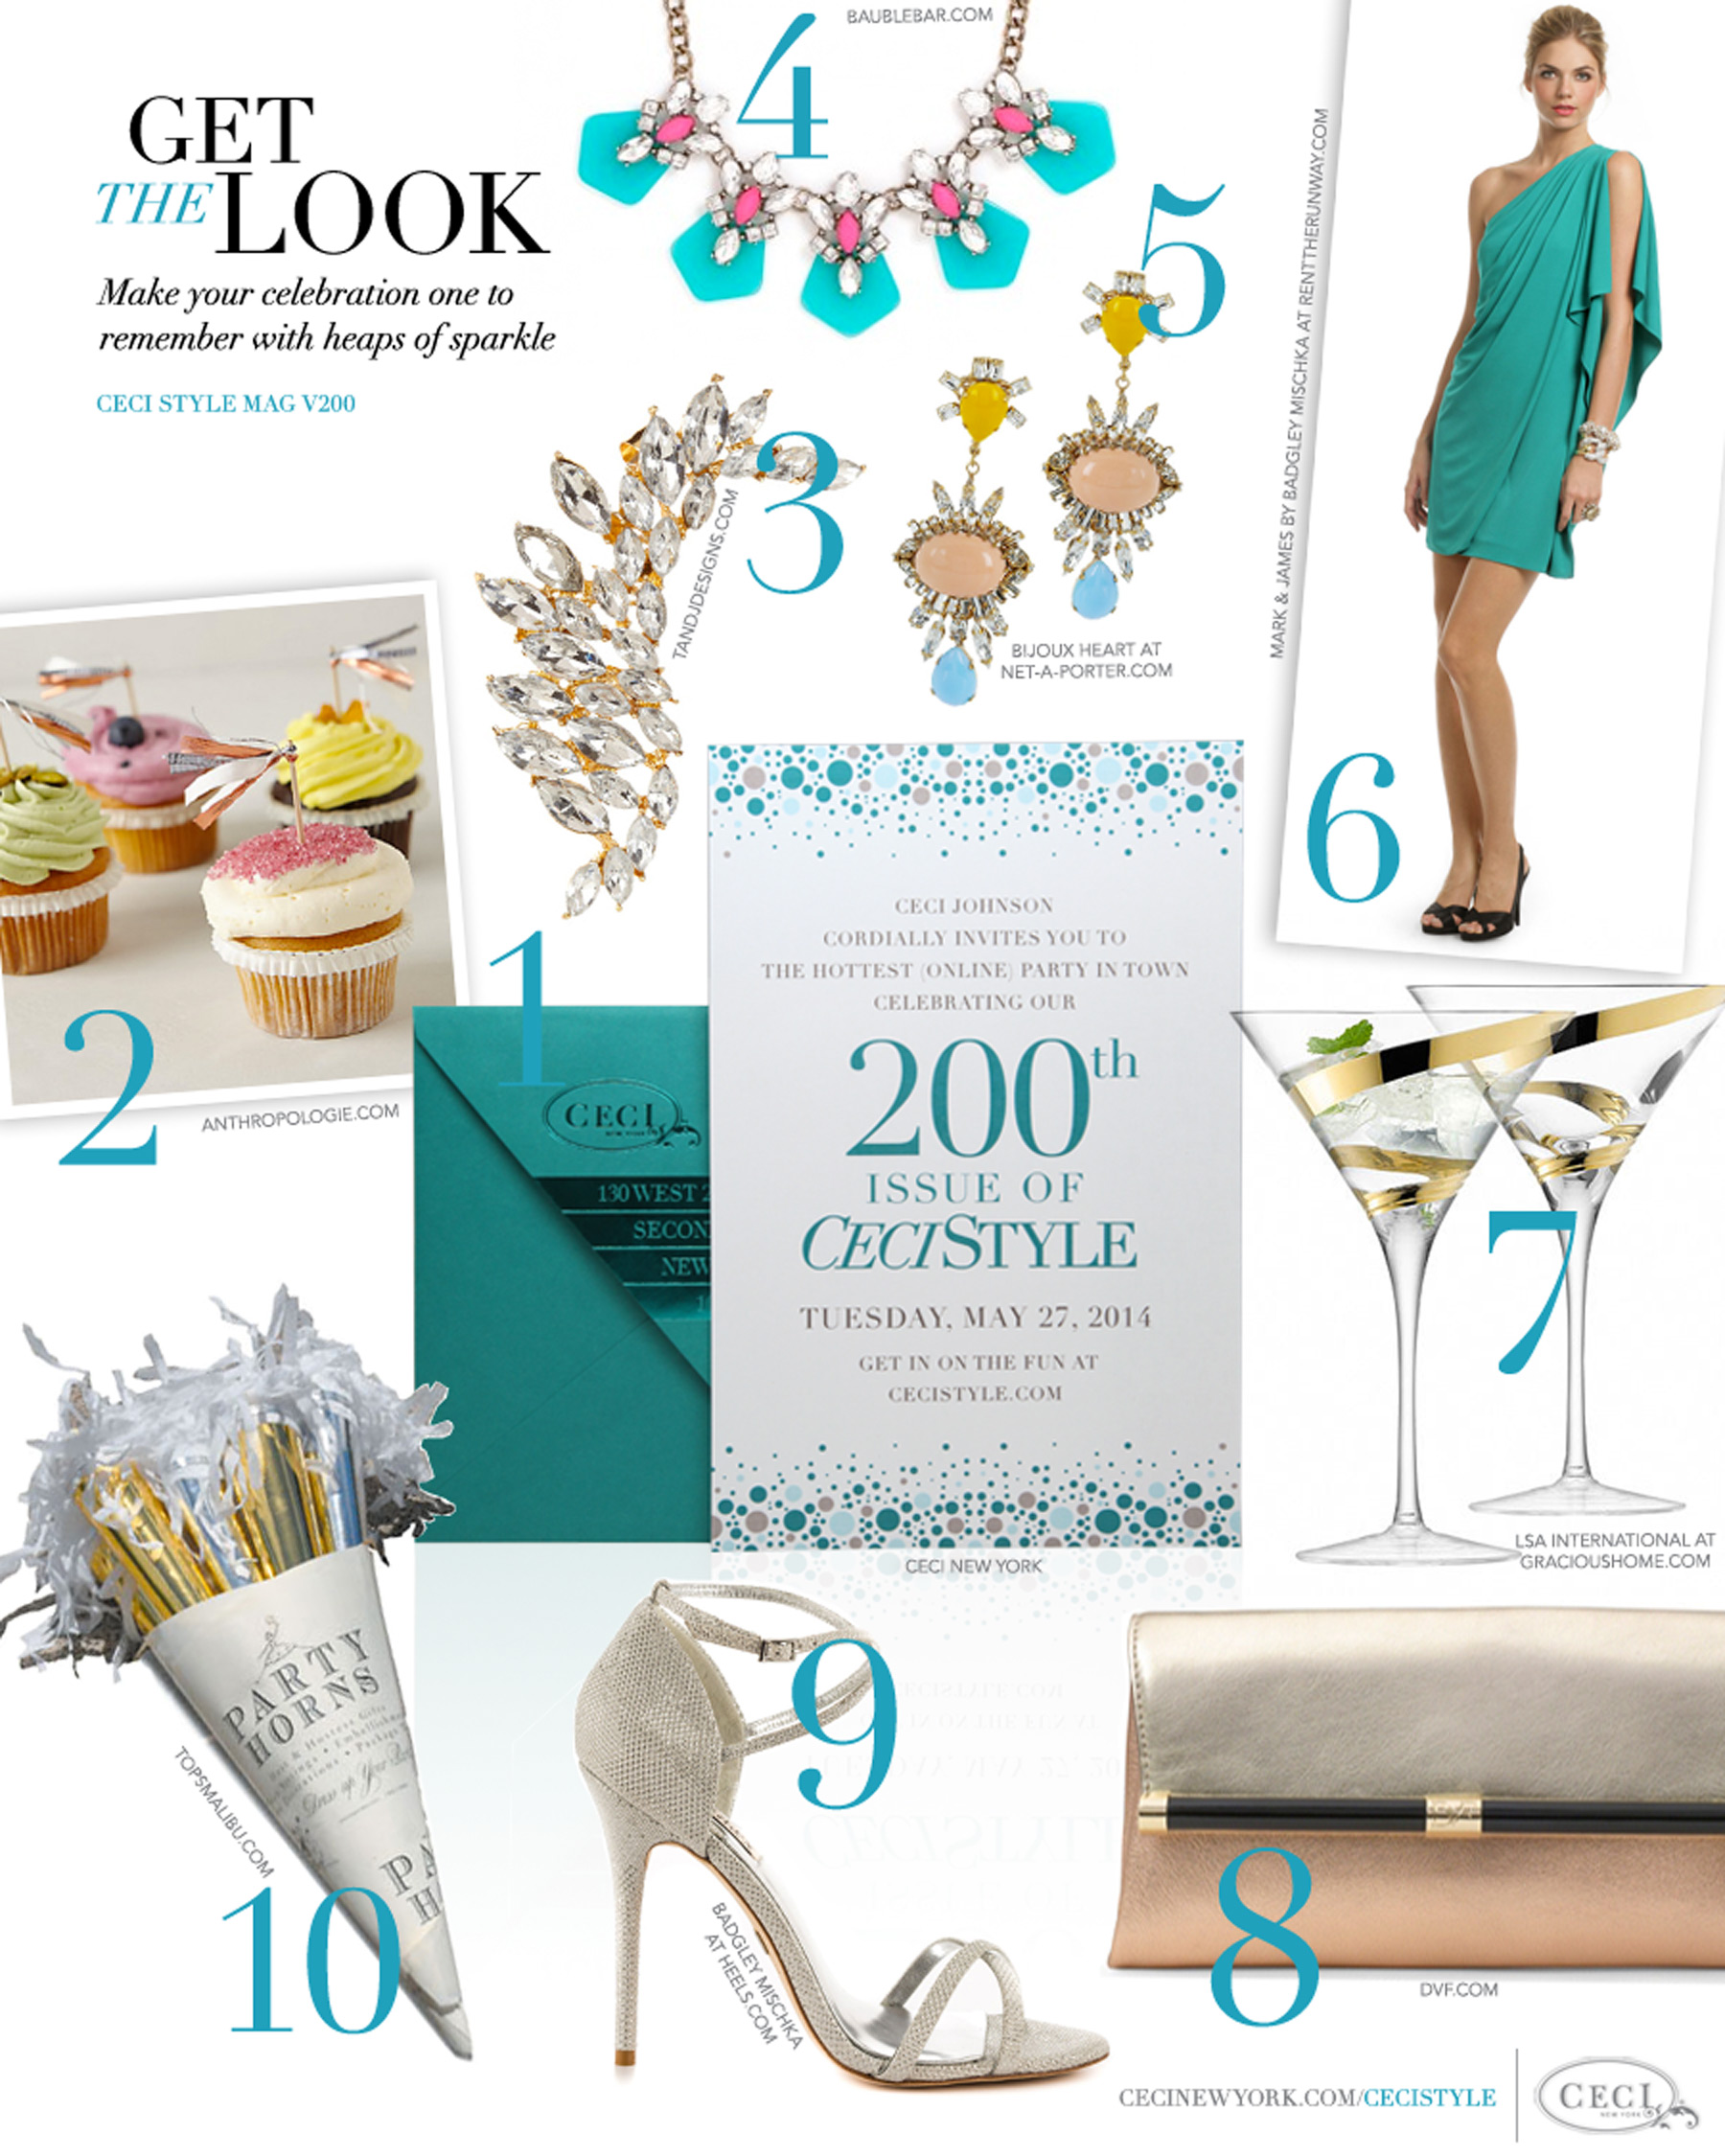 CeciStyle Magazine v200: Get The Look - Our 200th Issue - Make your celebration one to remember with heaps of sparkle - Luxury Wedding Invitations by Ceci New York - ceci new york, home goods, anthropologie, t&j designs, beauty, jewelry, fashion, shoes, food, handbags, baublebar, bijoux heart, mark & james, badgley mischka, malkia grand, diane von furstenberg, tops malibu